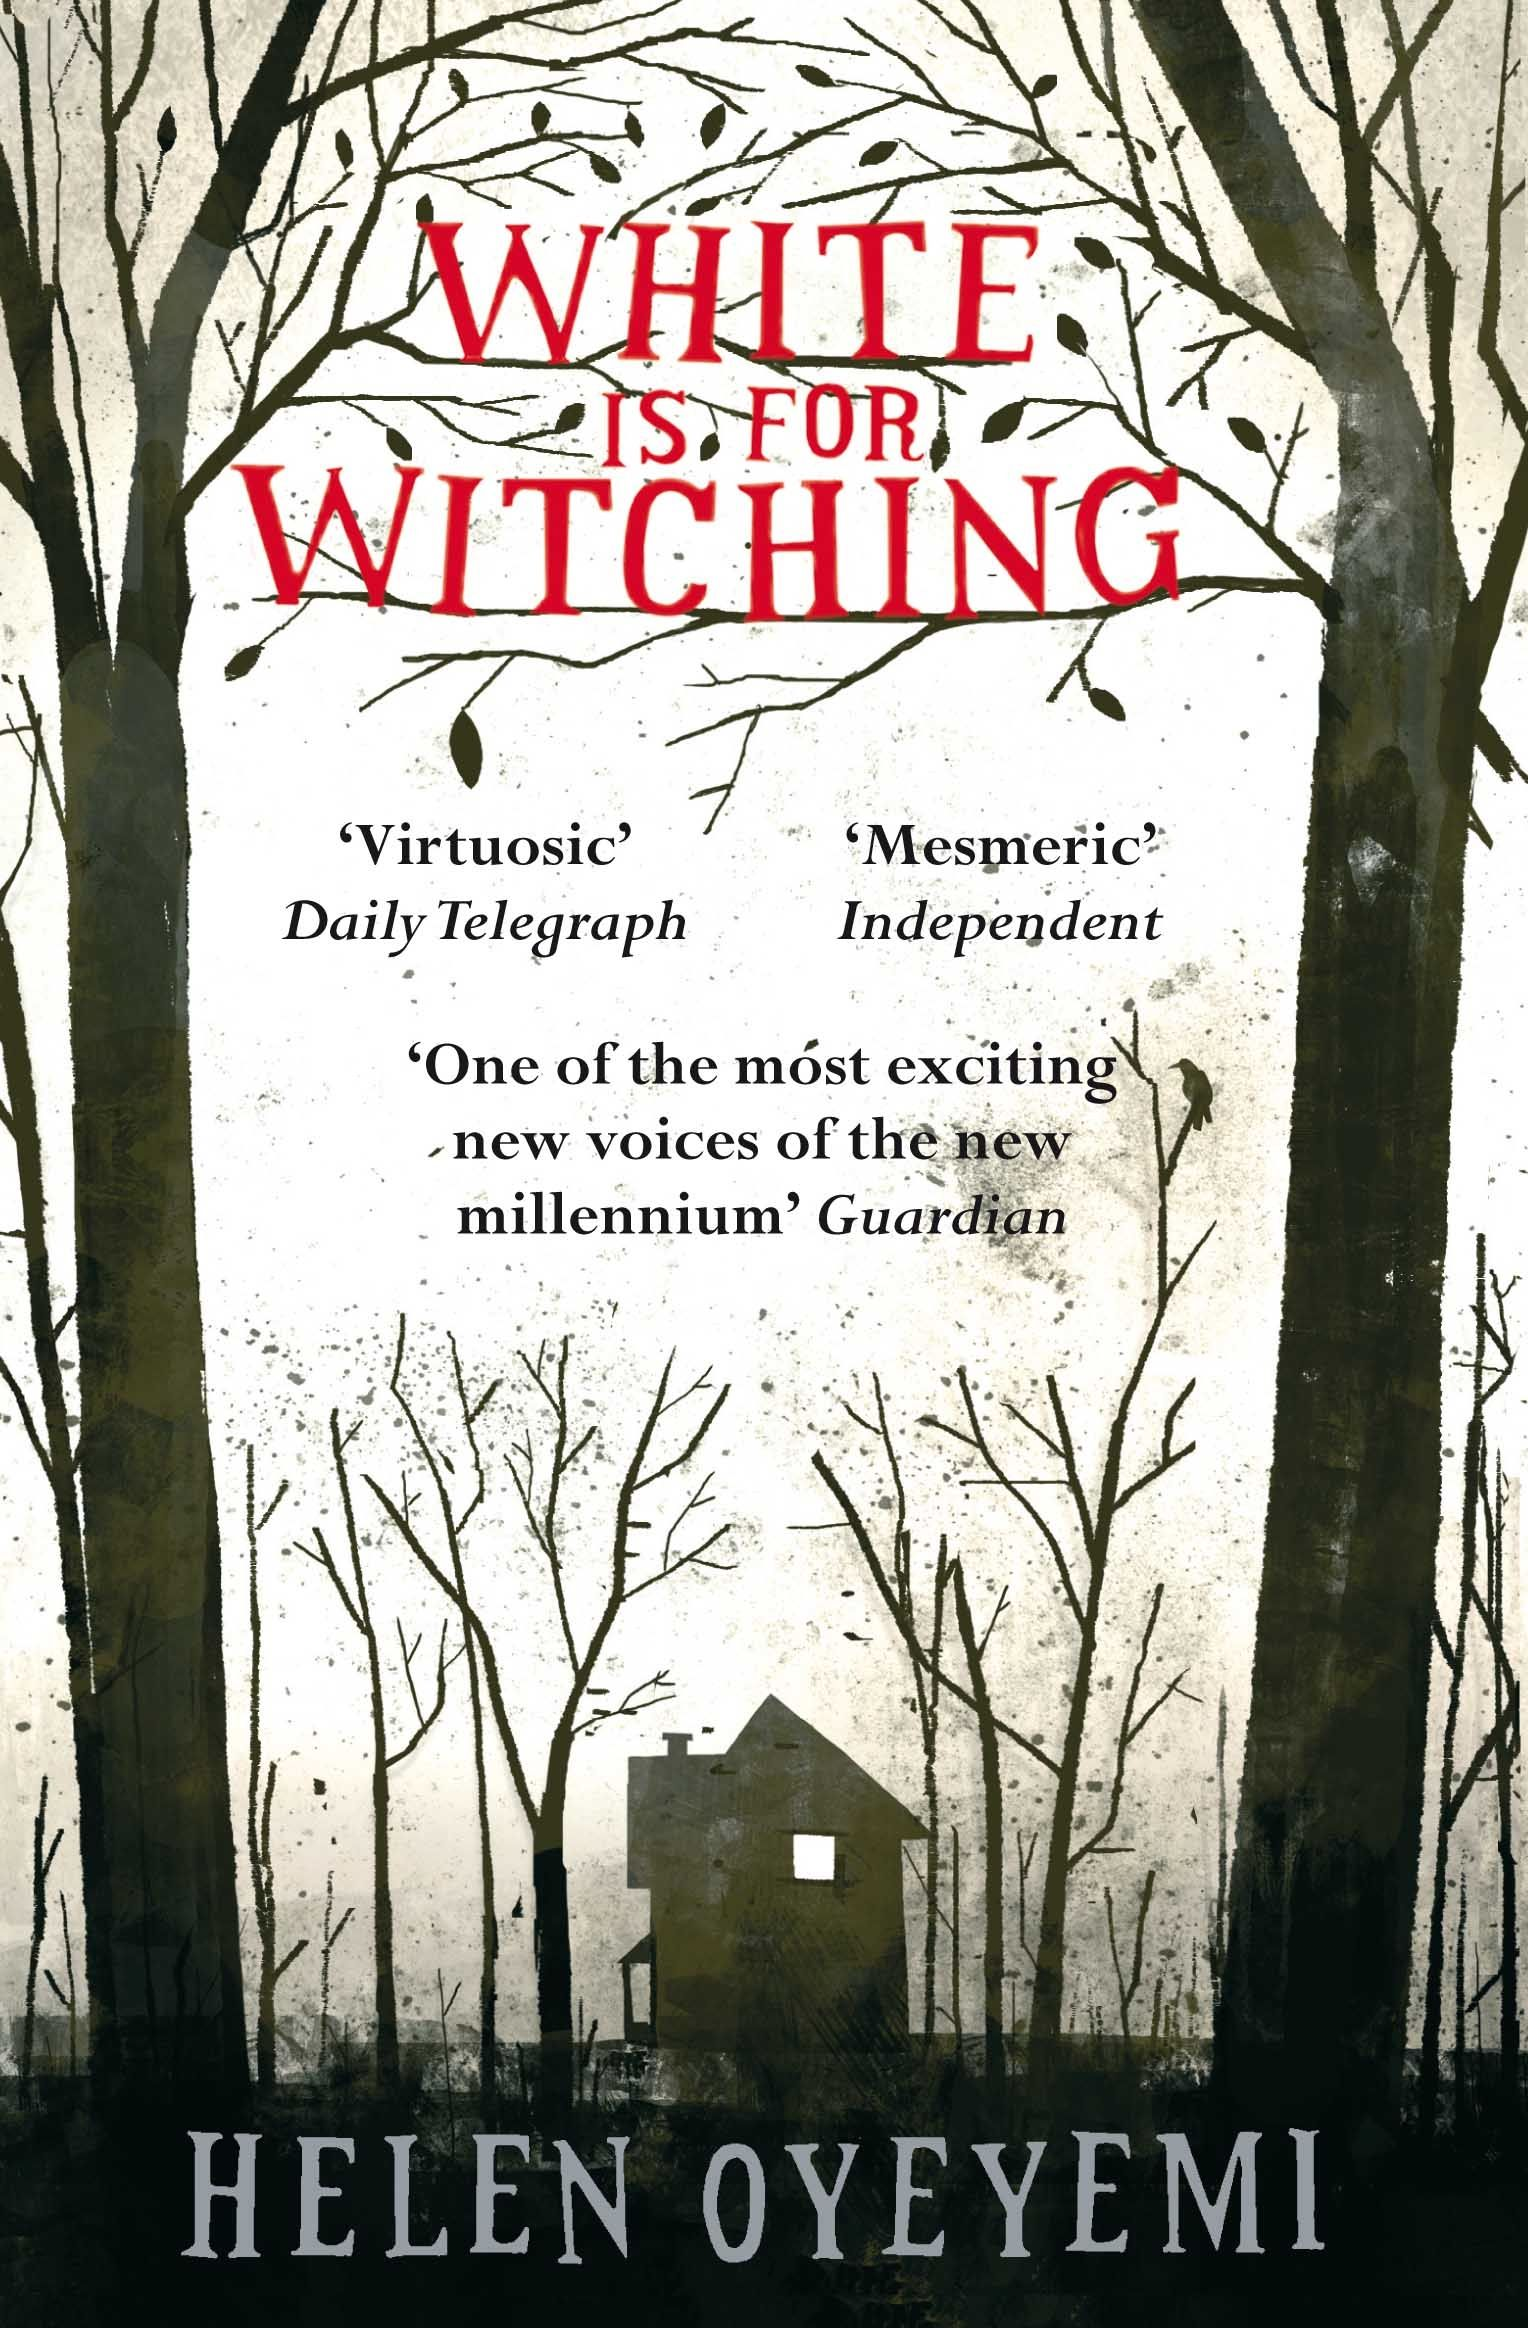 Image result for white is for witching helen oyeyemi